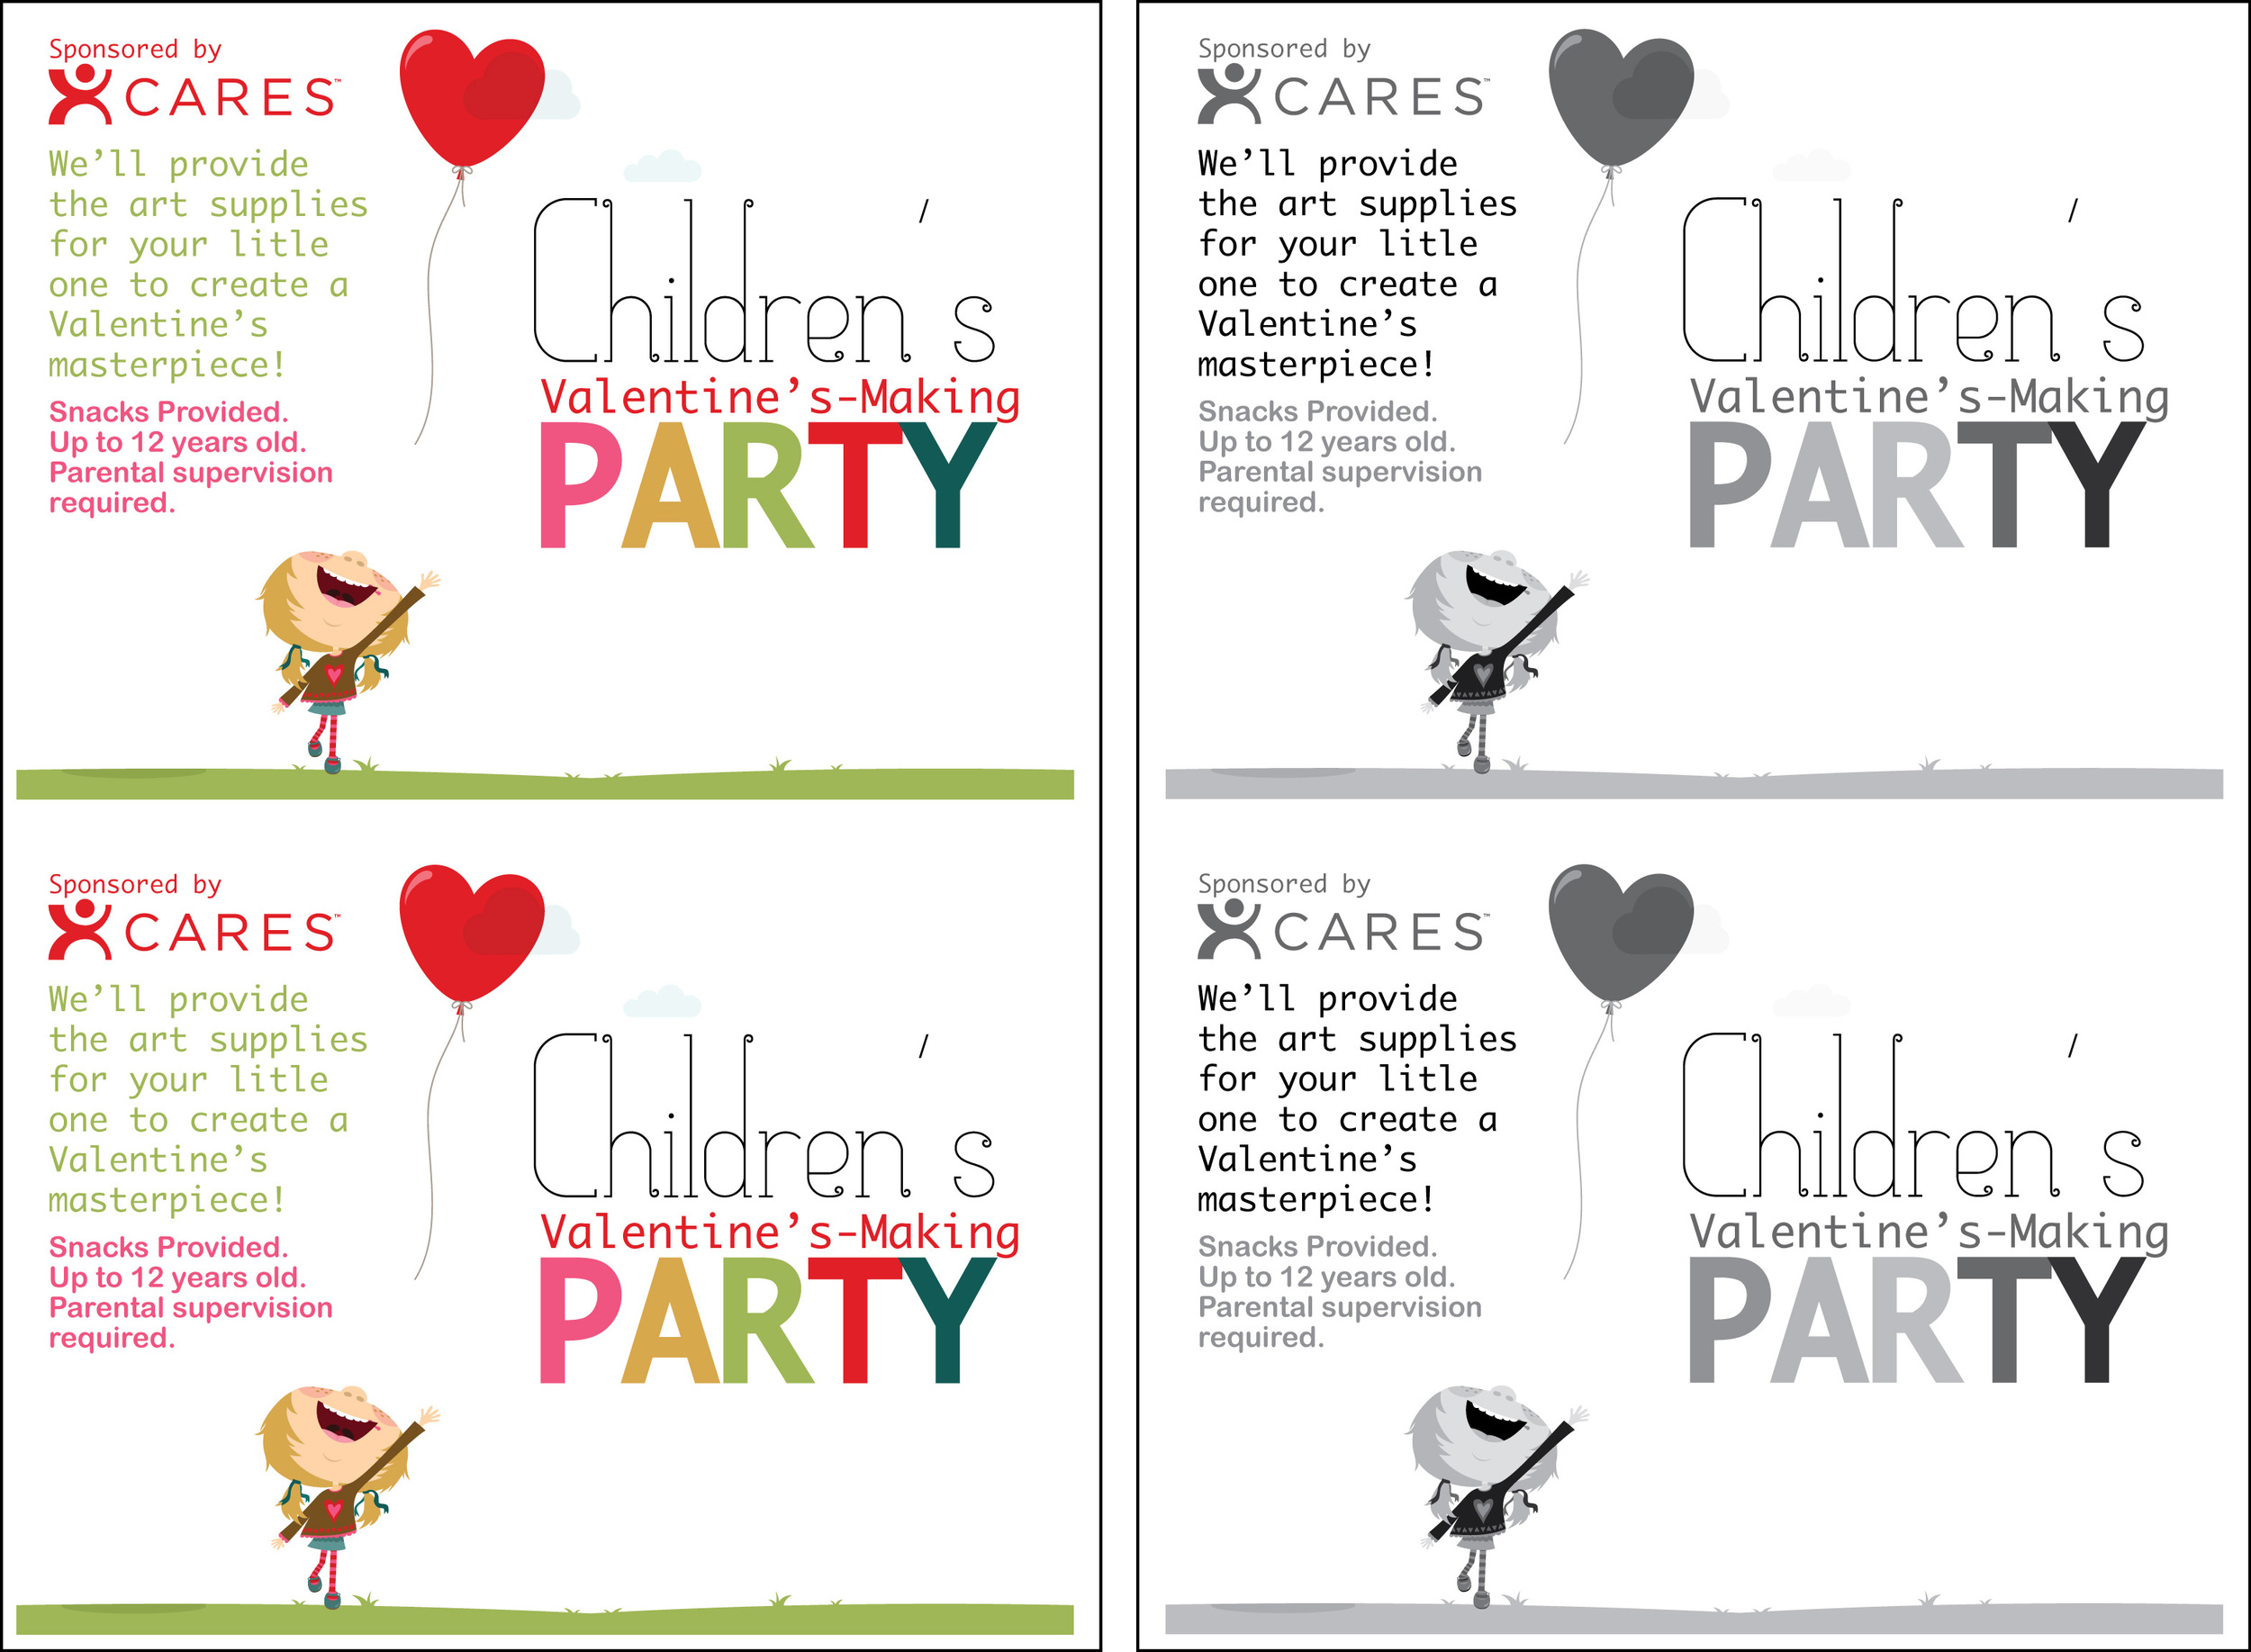 Childrens Valentines Party-doublesheet